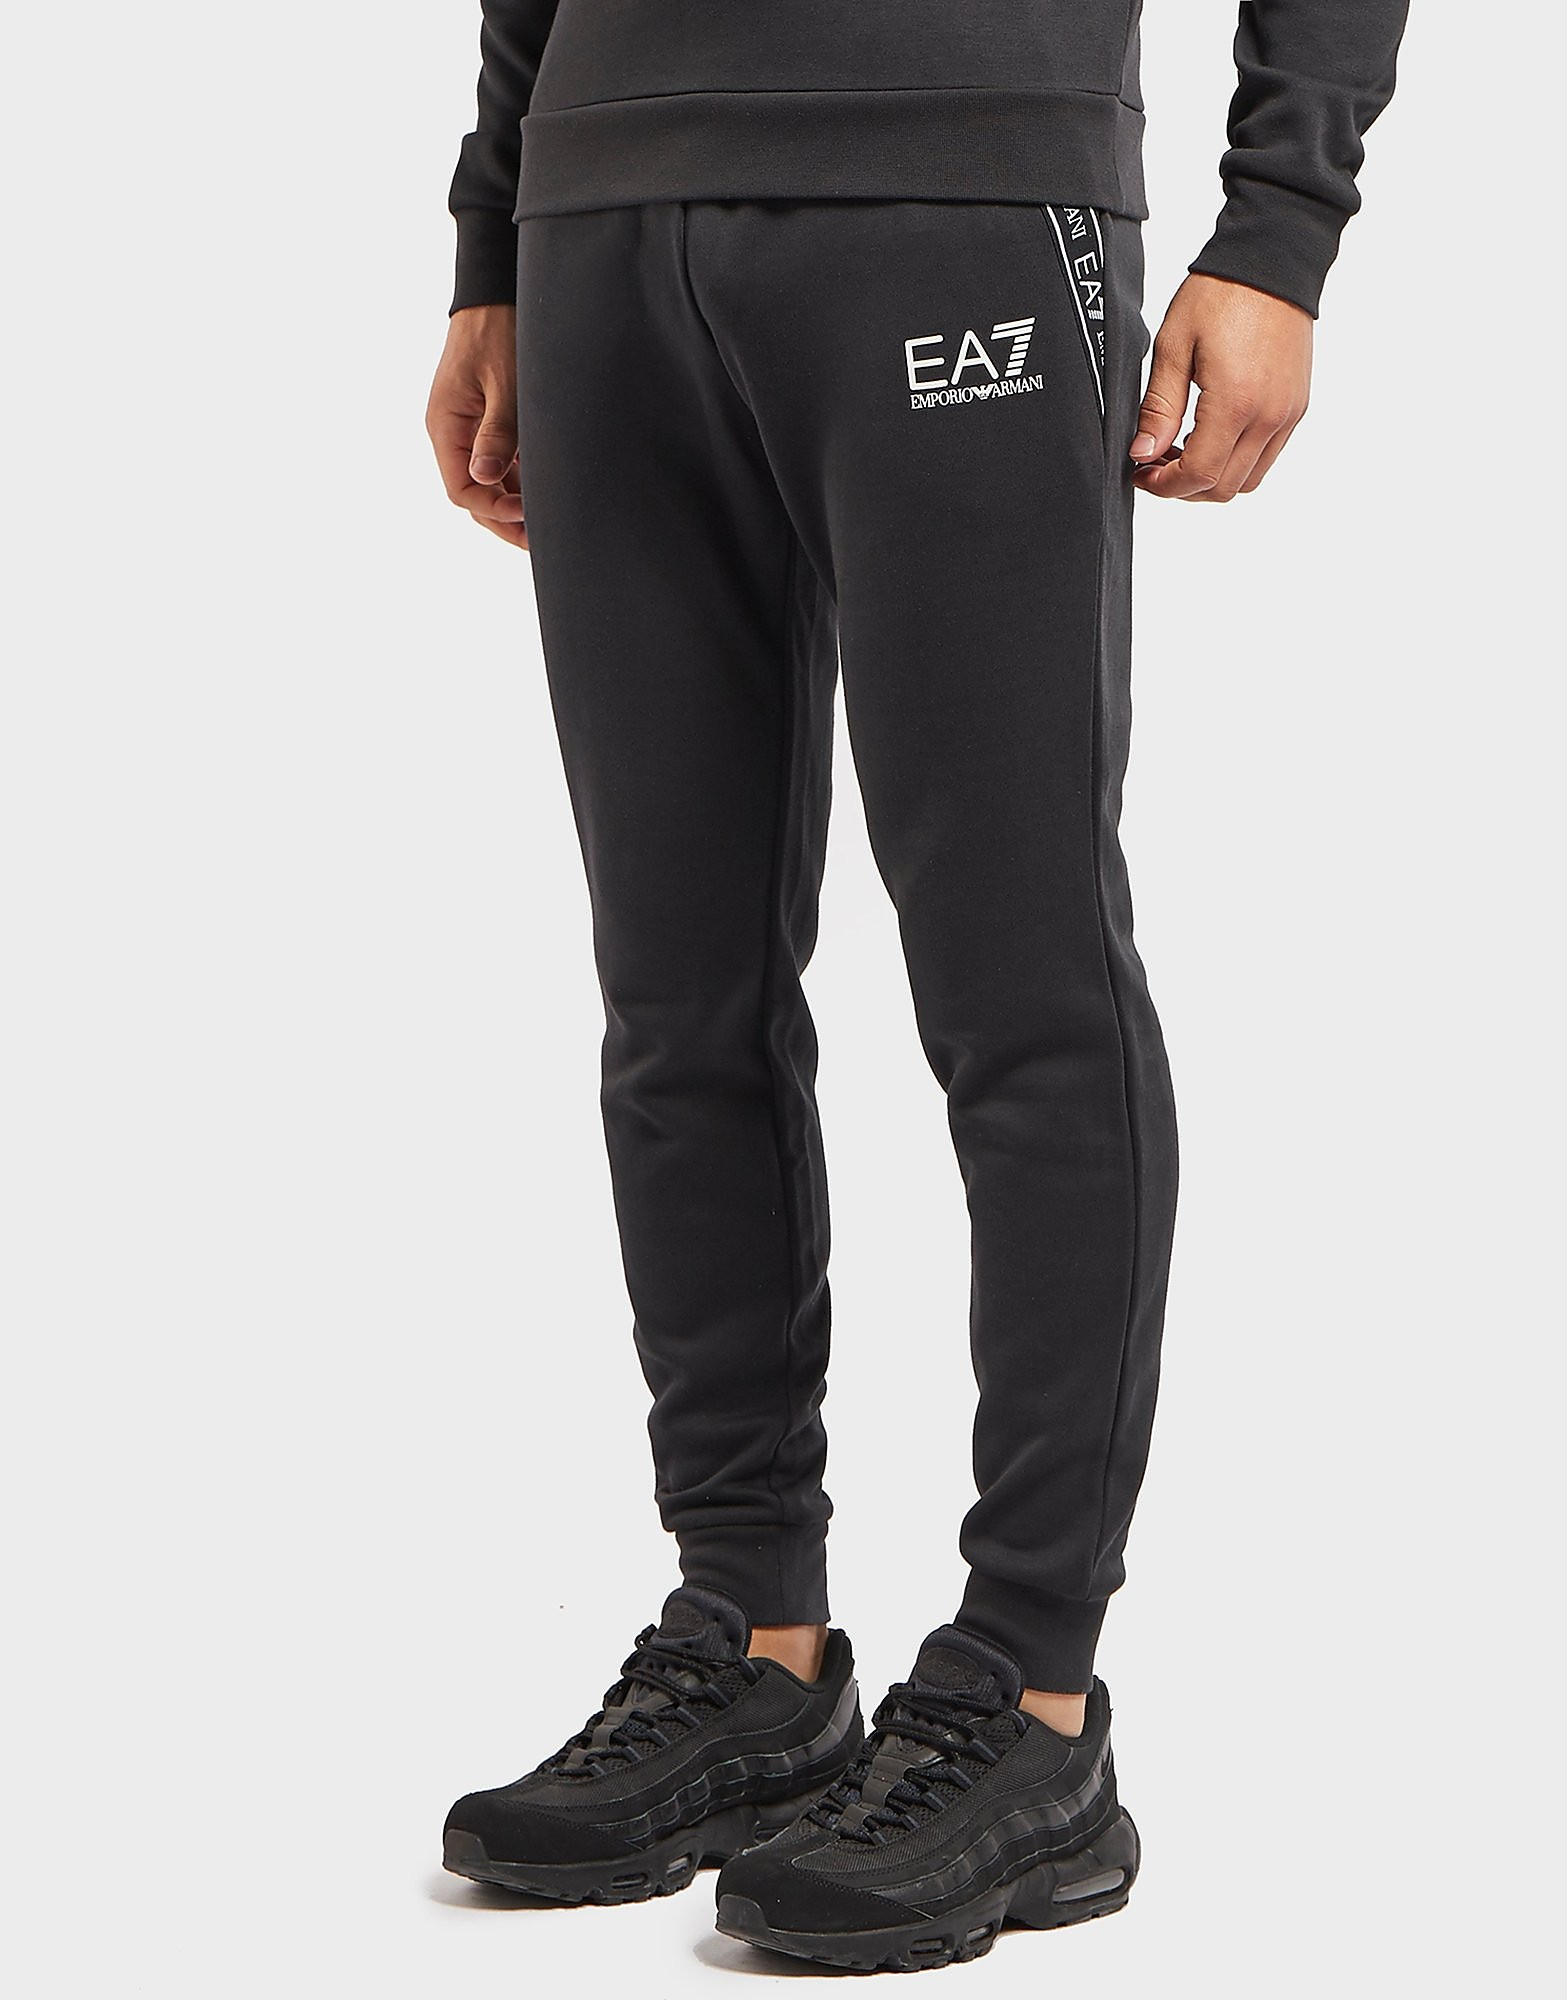 Emporio Armani EA7 Tape Cuffed Fleece Pants - Exclusive